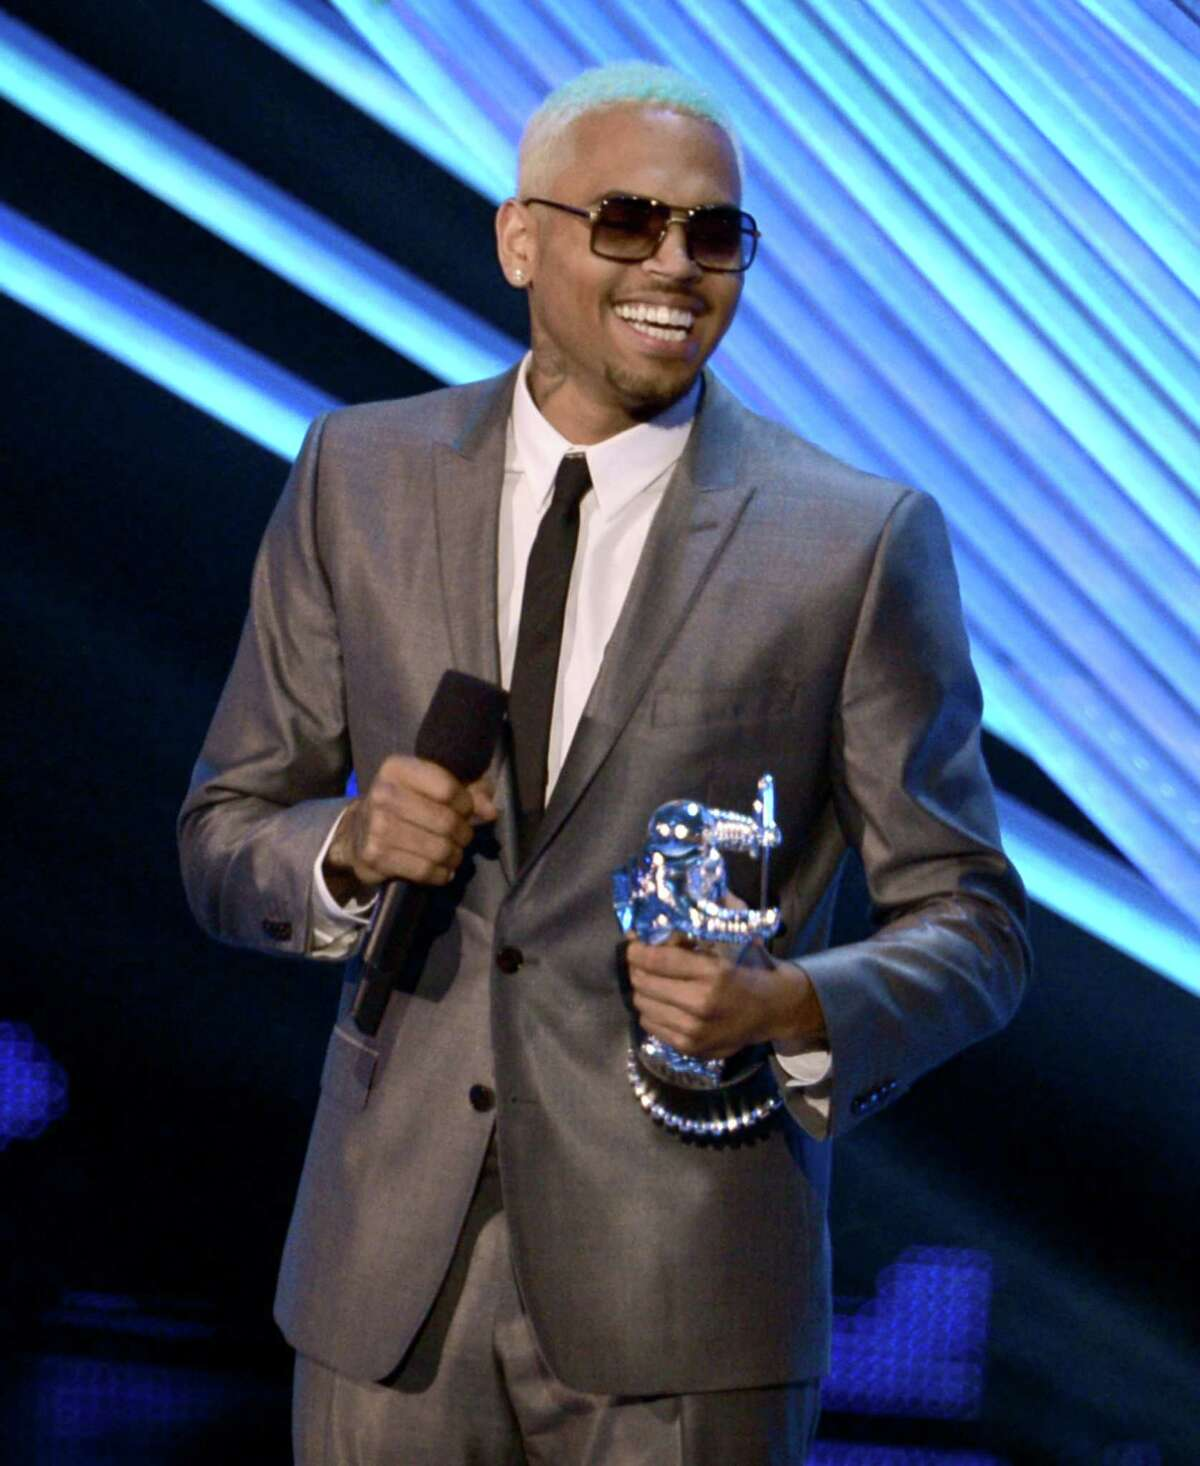 Sunday's MTV Video Music Awards will bring to mind several iconic moments -- not just for the show itself but for pop culture at large. Here's a look back at several years' worth of highlights, starting with singer Chris Brown accepting the award for Best Male Video onstage during the 2012 MTV Video Music Awards at Staples Center in Los Angeles on Sept. 6, 2012.